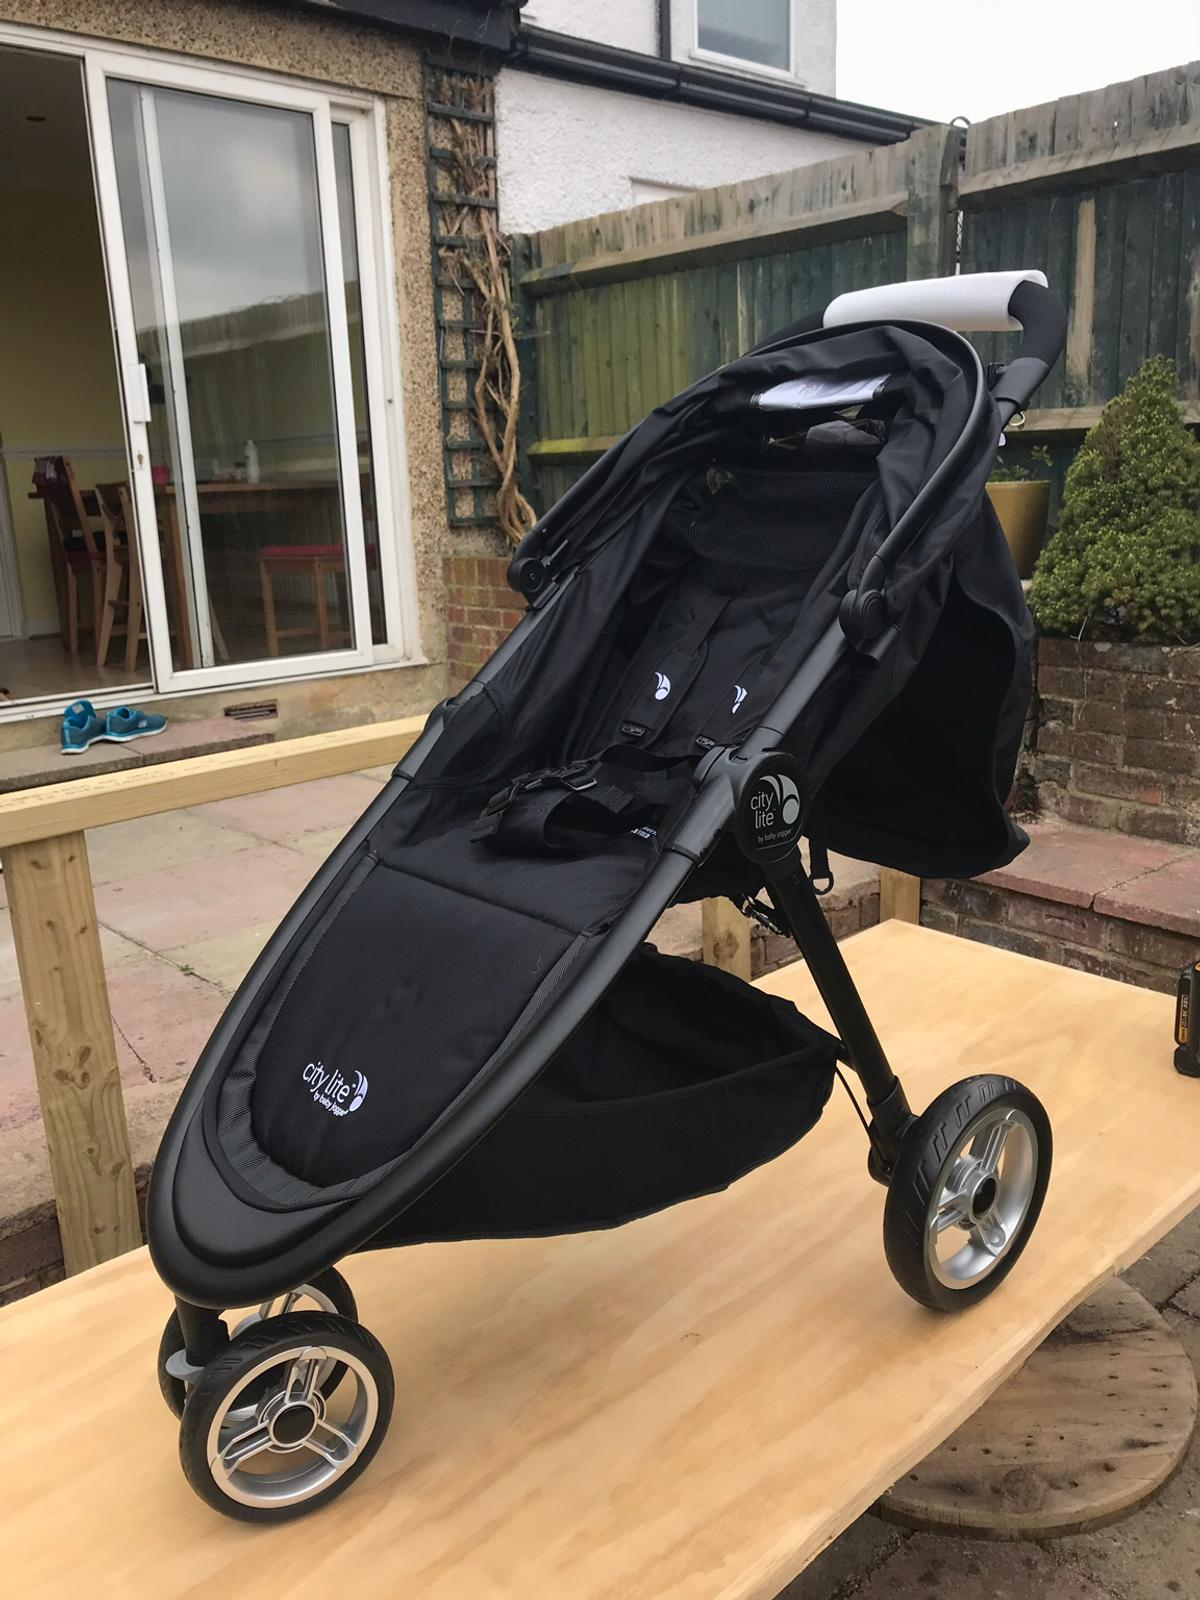 Baby Jogger City Lite Ex Display In Rh1 Banstead For 135 00 For